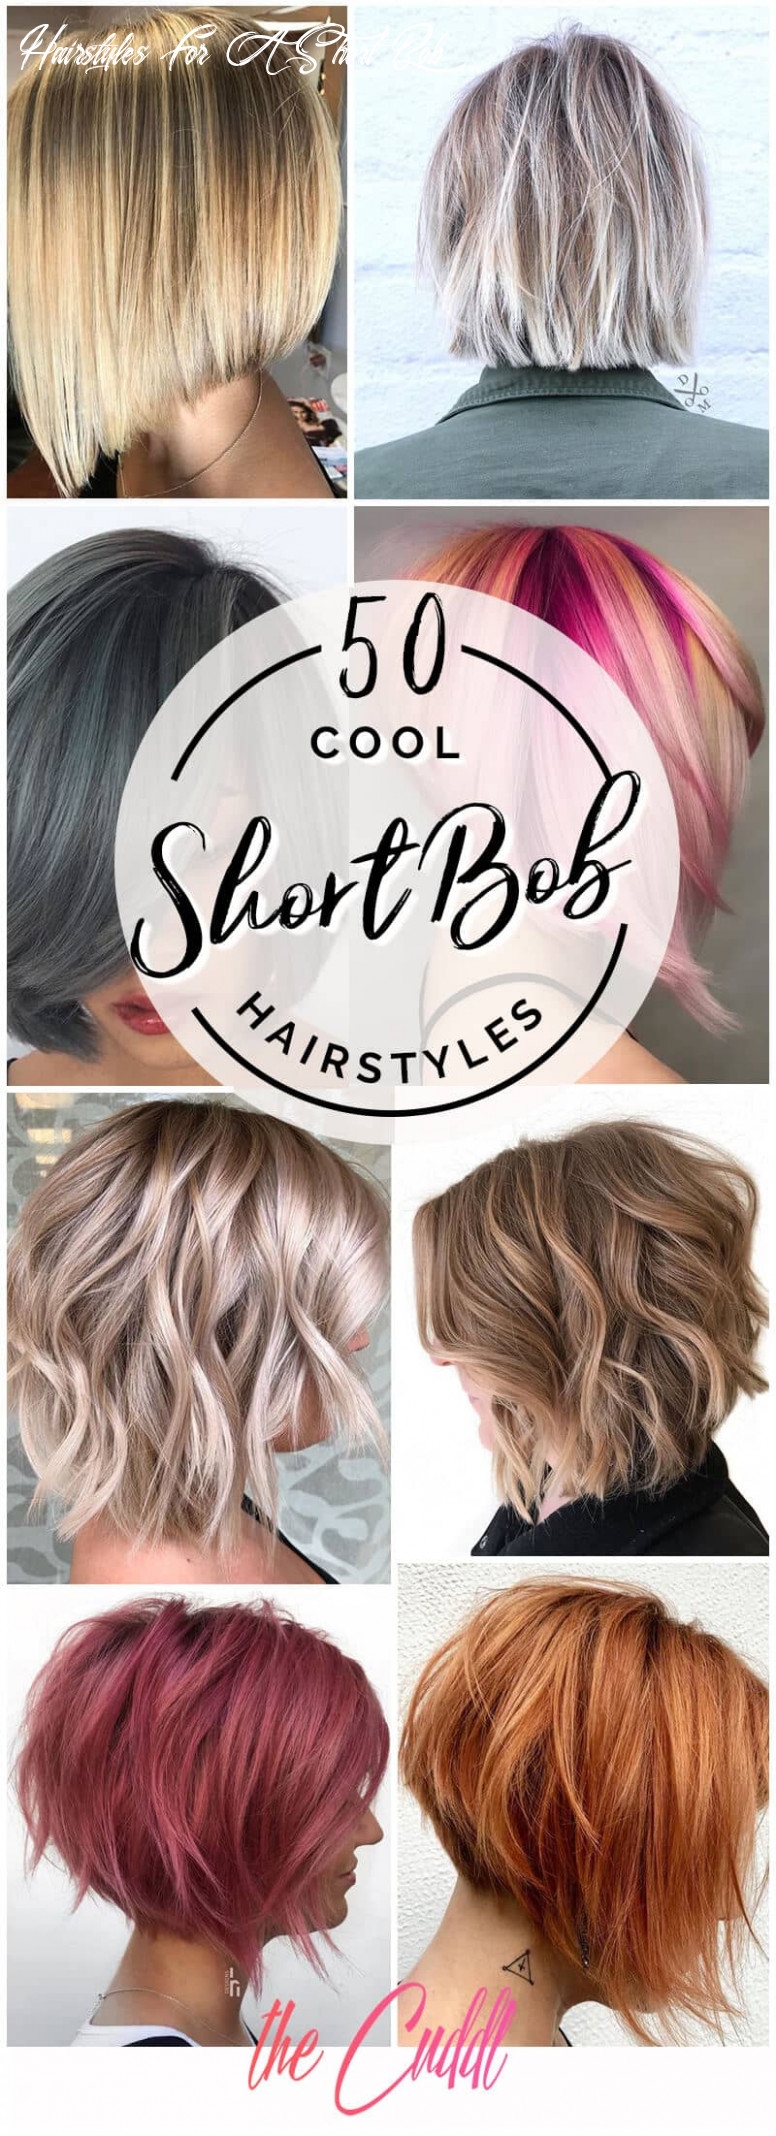 10 most eye catching short bob haircuts that will make you stand out hairstyles for a short bob